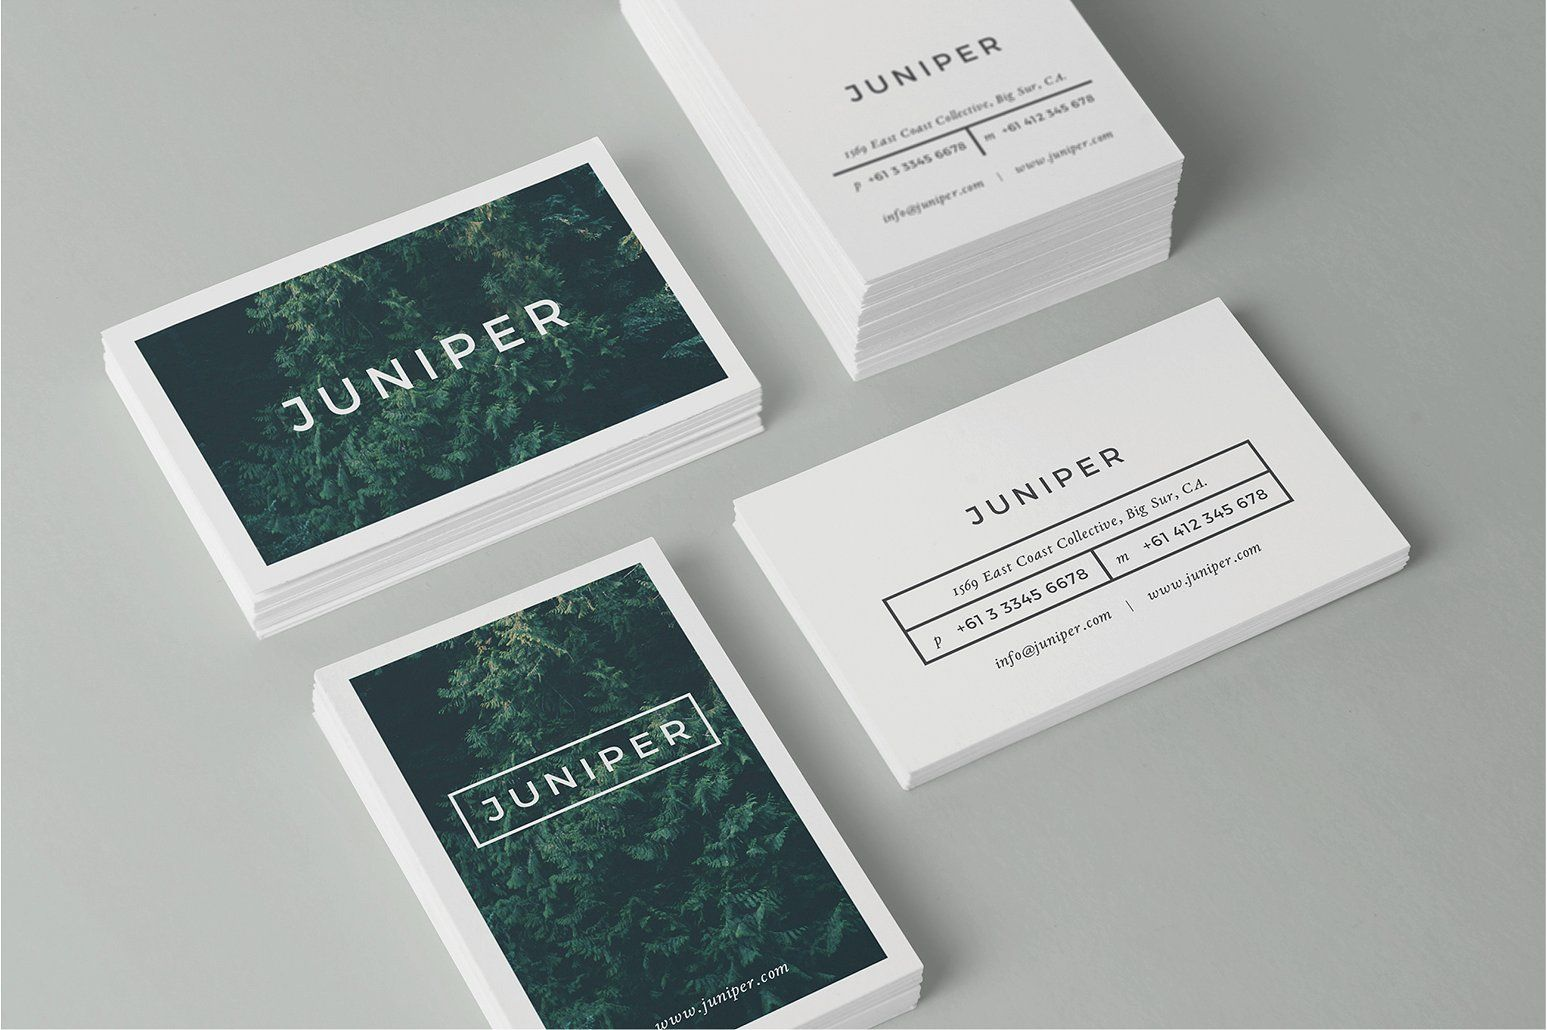 J U N I P E R Business Card Template by 46&2 Collective on ...